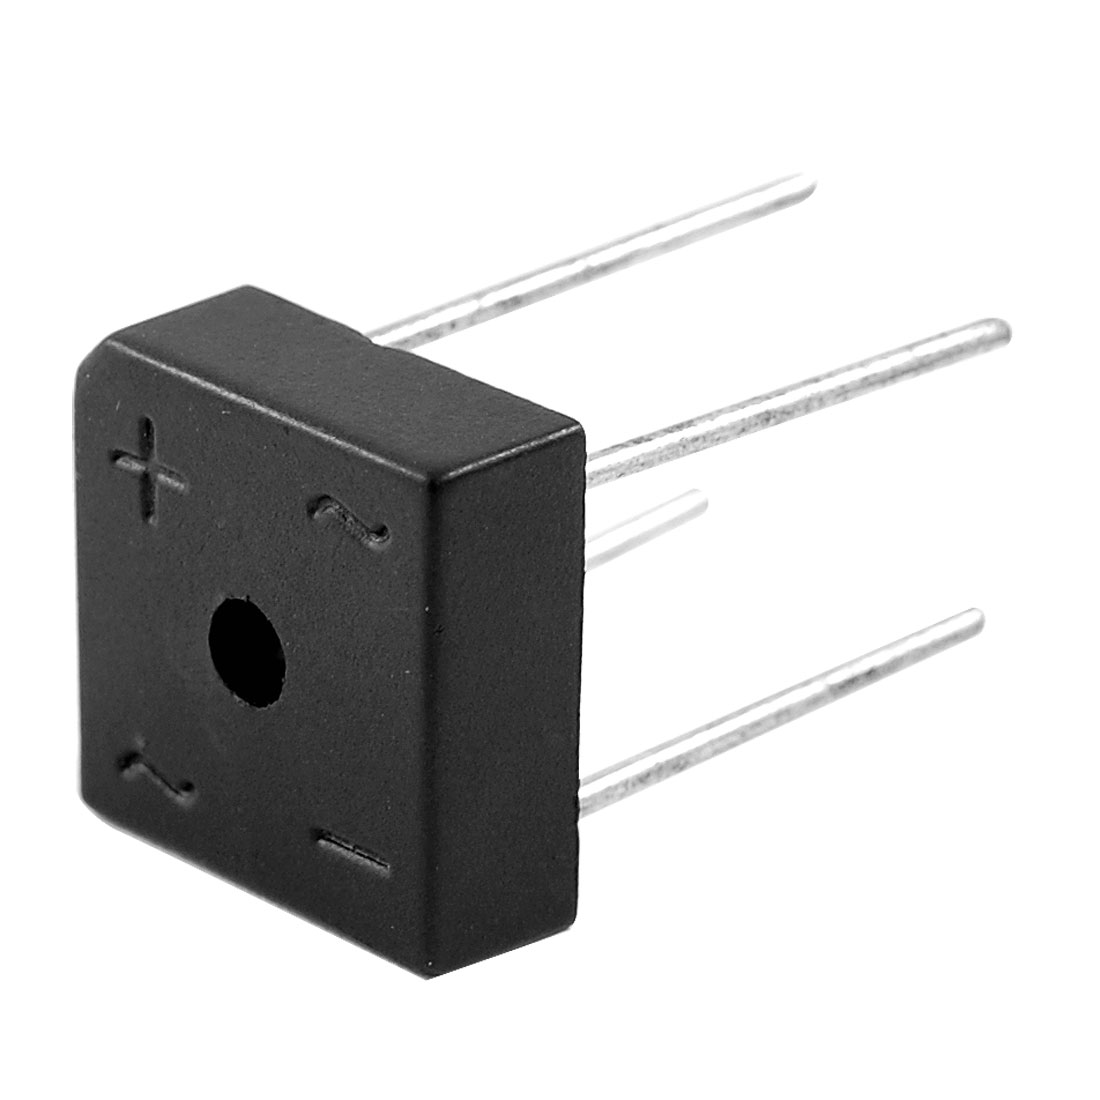 KBPC810 Single Phase Silicon Bridge Rectifier 8A 1000V